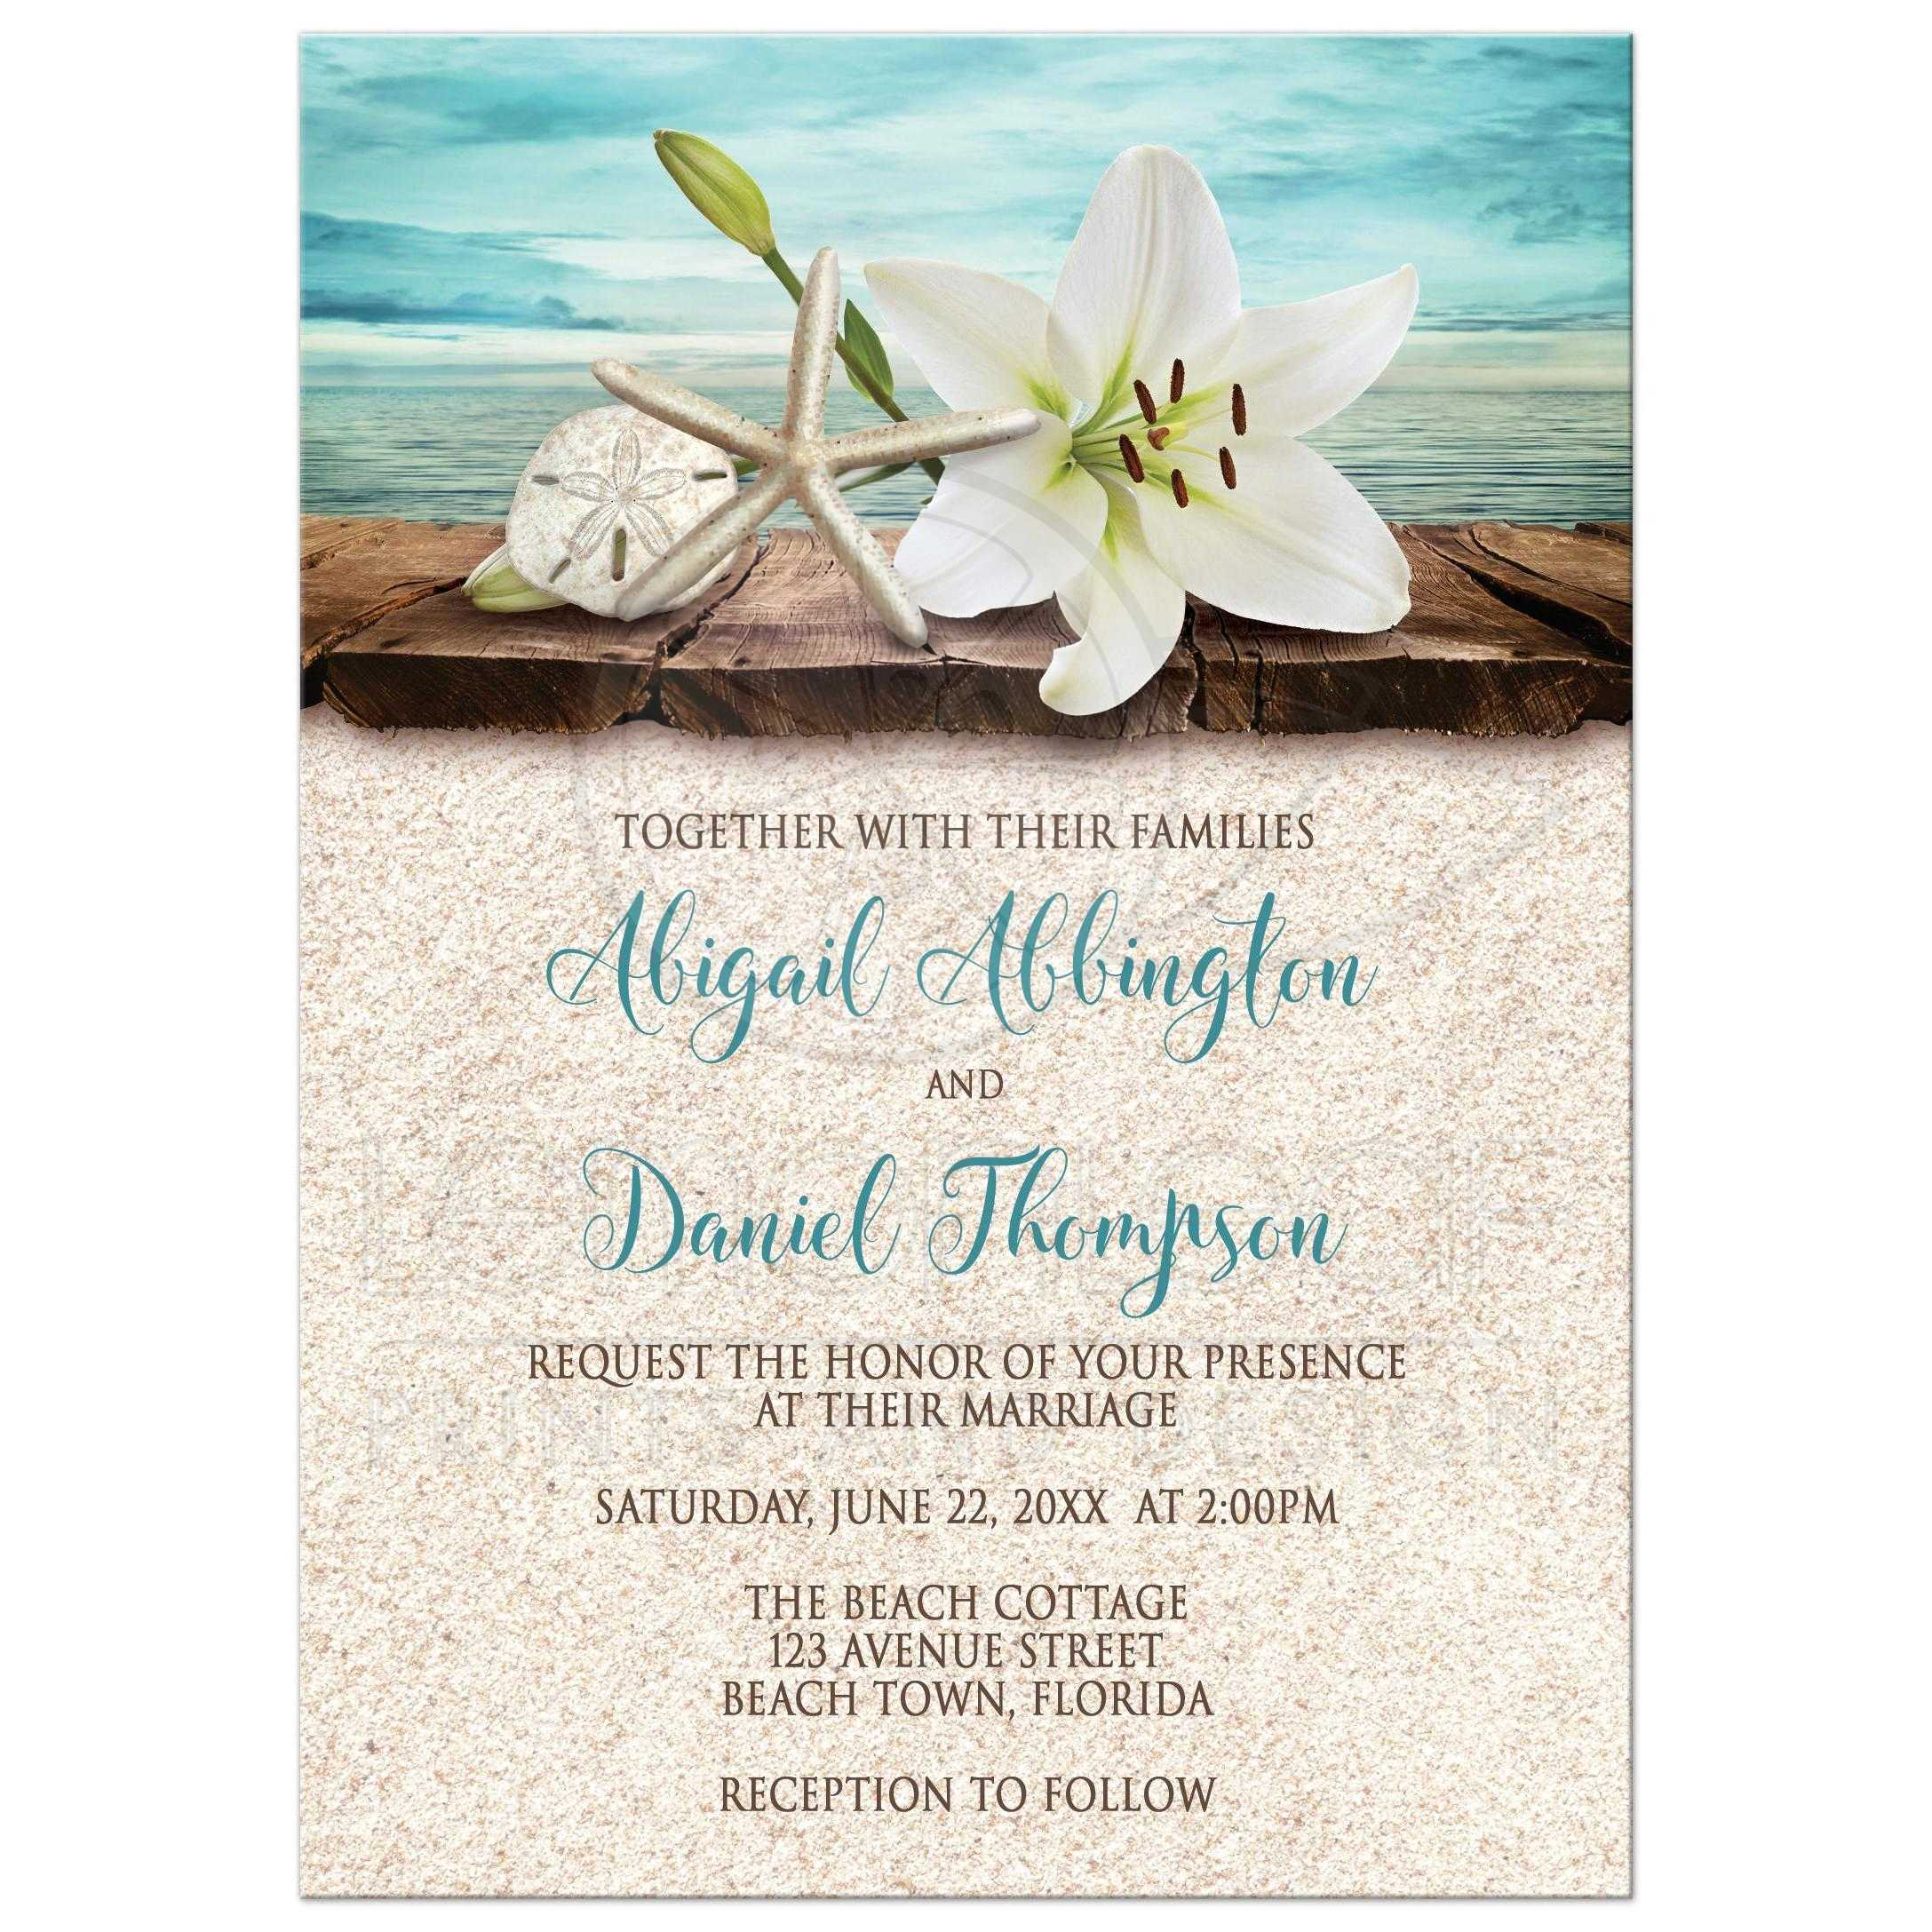 First Holy Communion Invitation Templates for good invitations layout